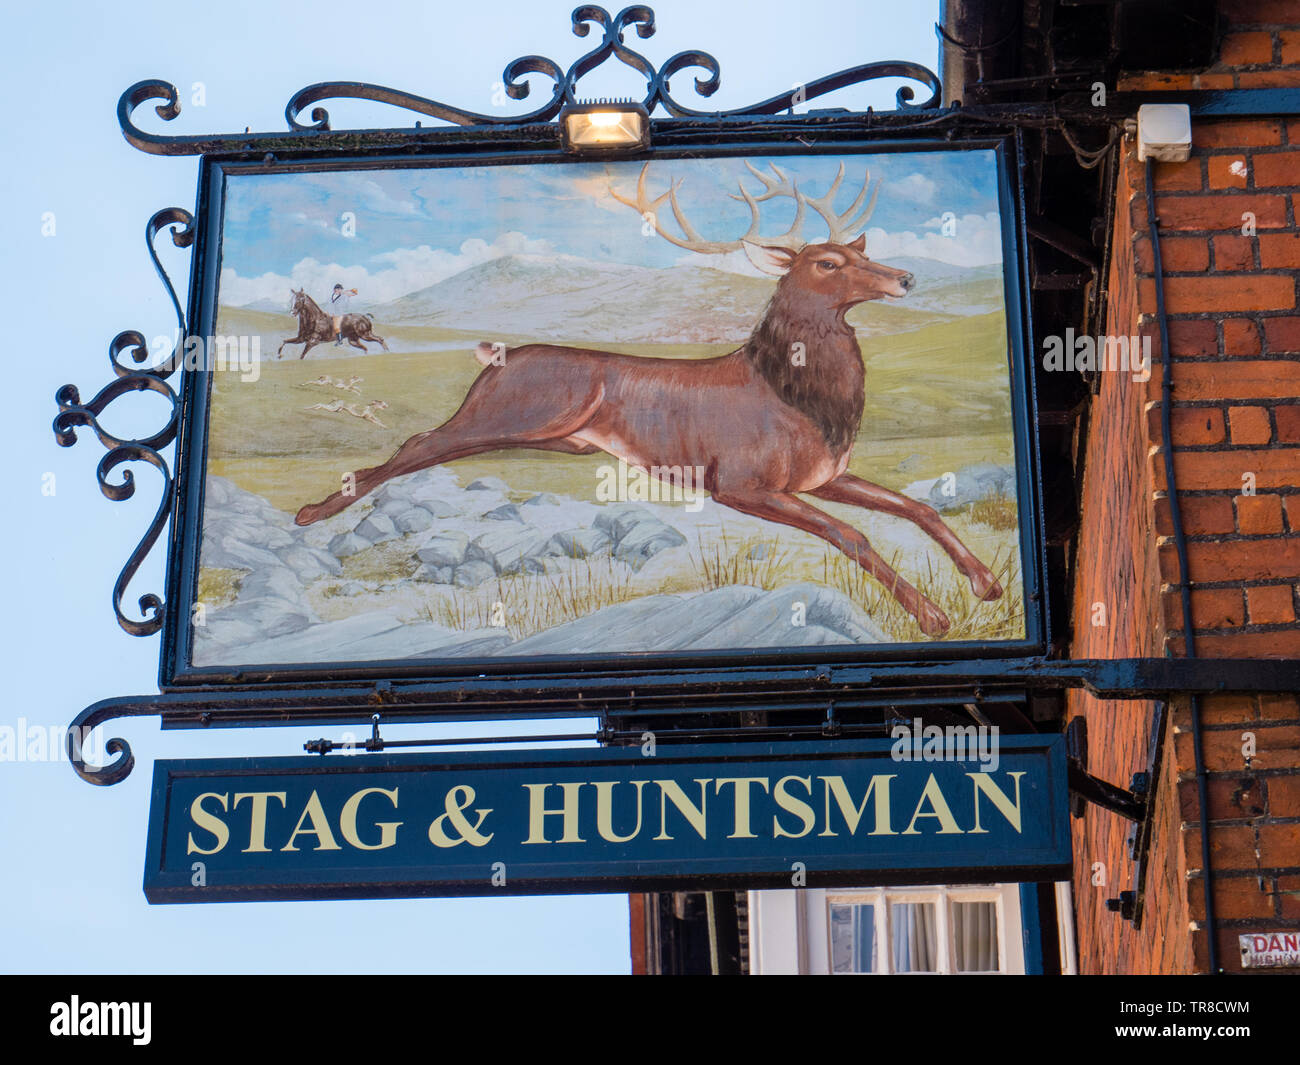 Stag and Huntsman Sign, Pub, Hambleden, Buckinghamshire, England, UK, GB. - Stock Image